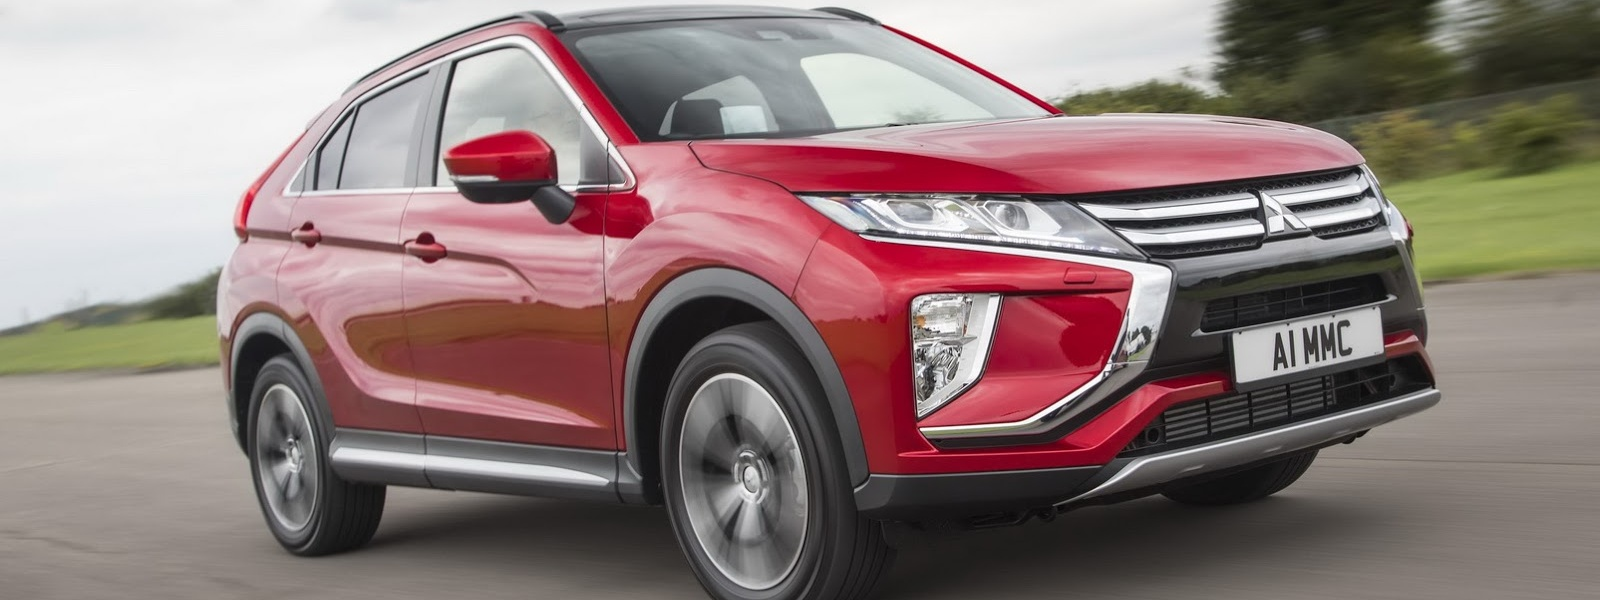 mitsu-eclipse-cross-uk-pricing-2.jpg